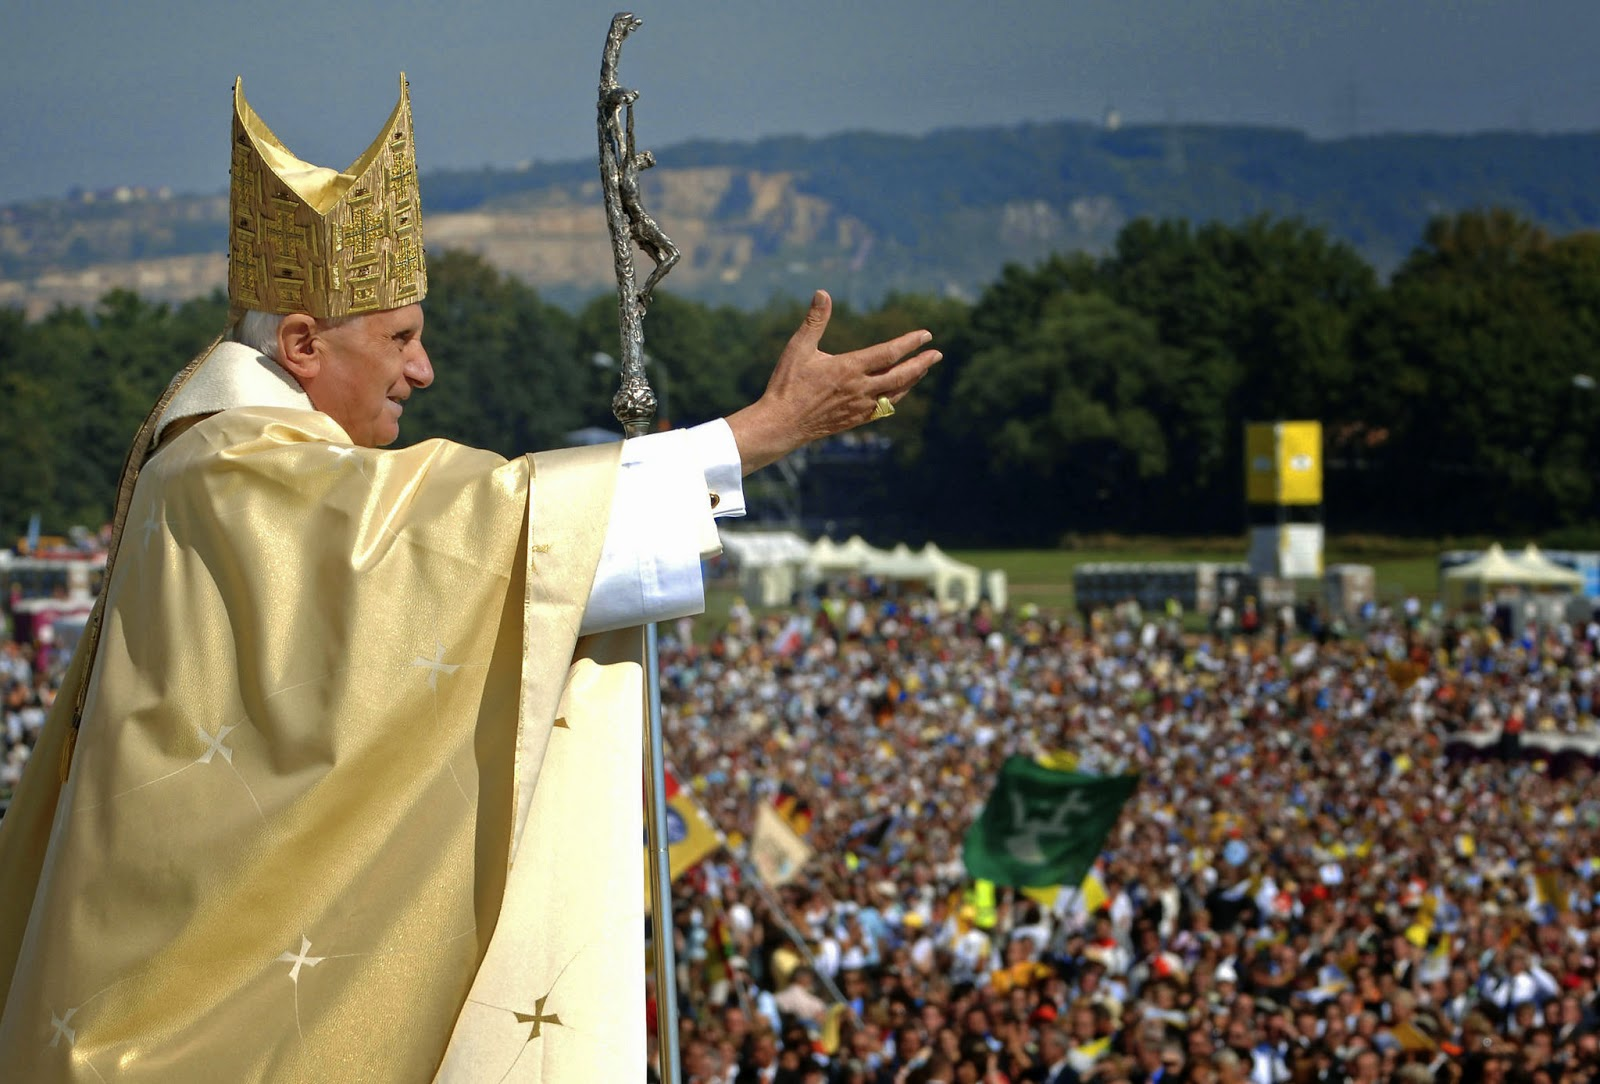 Pope Francis: World's greatest leader?